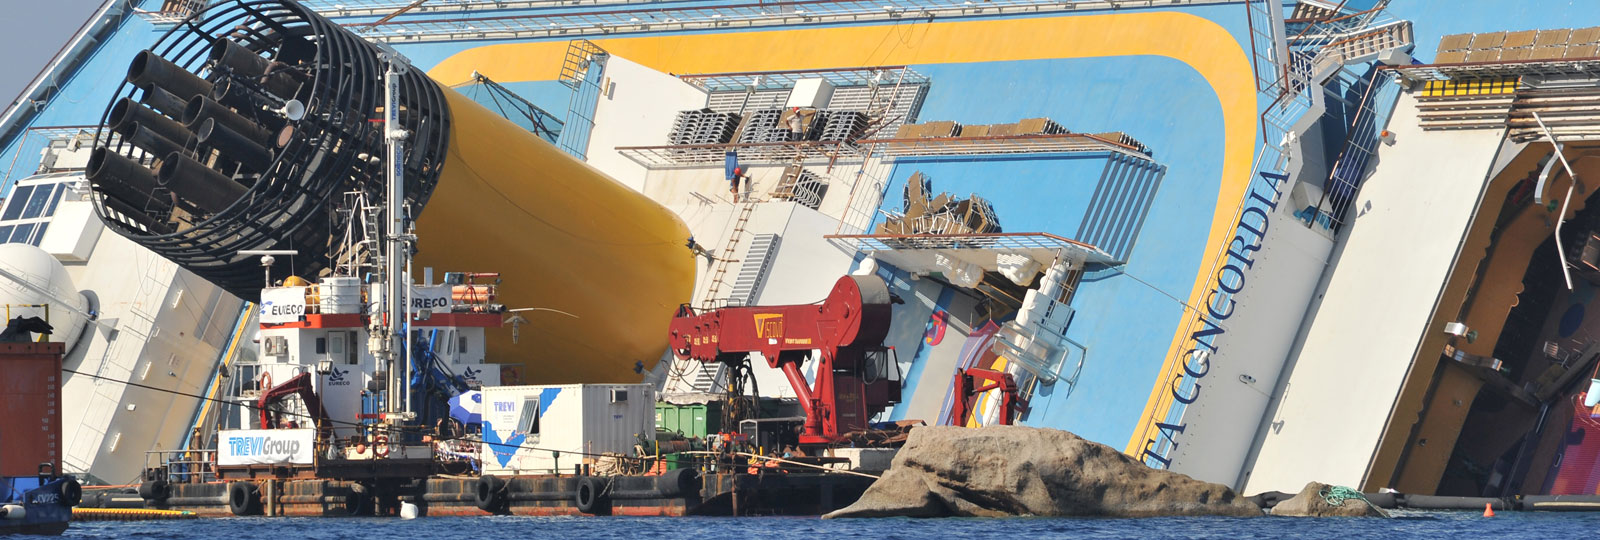 Costa Concordia Wreck Removal Project